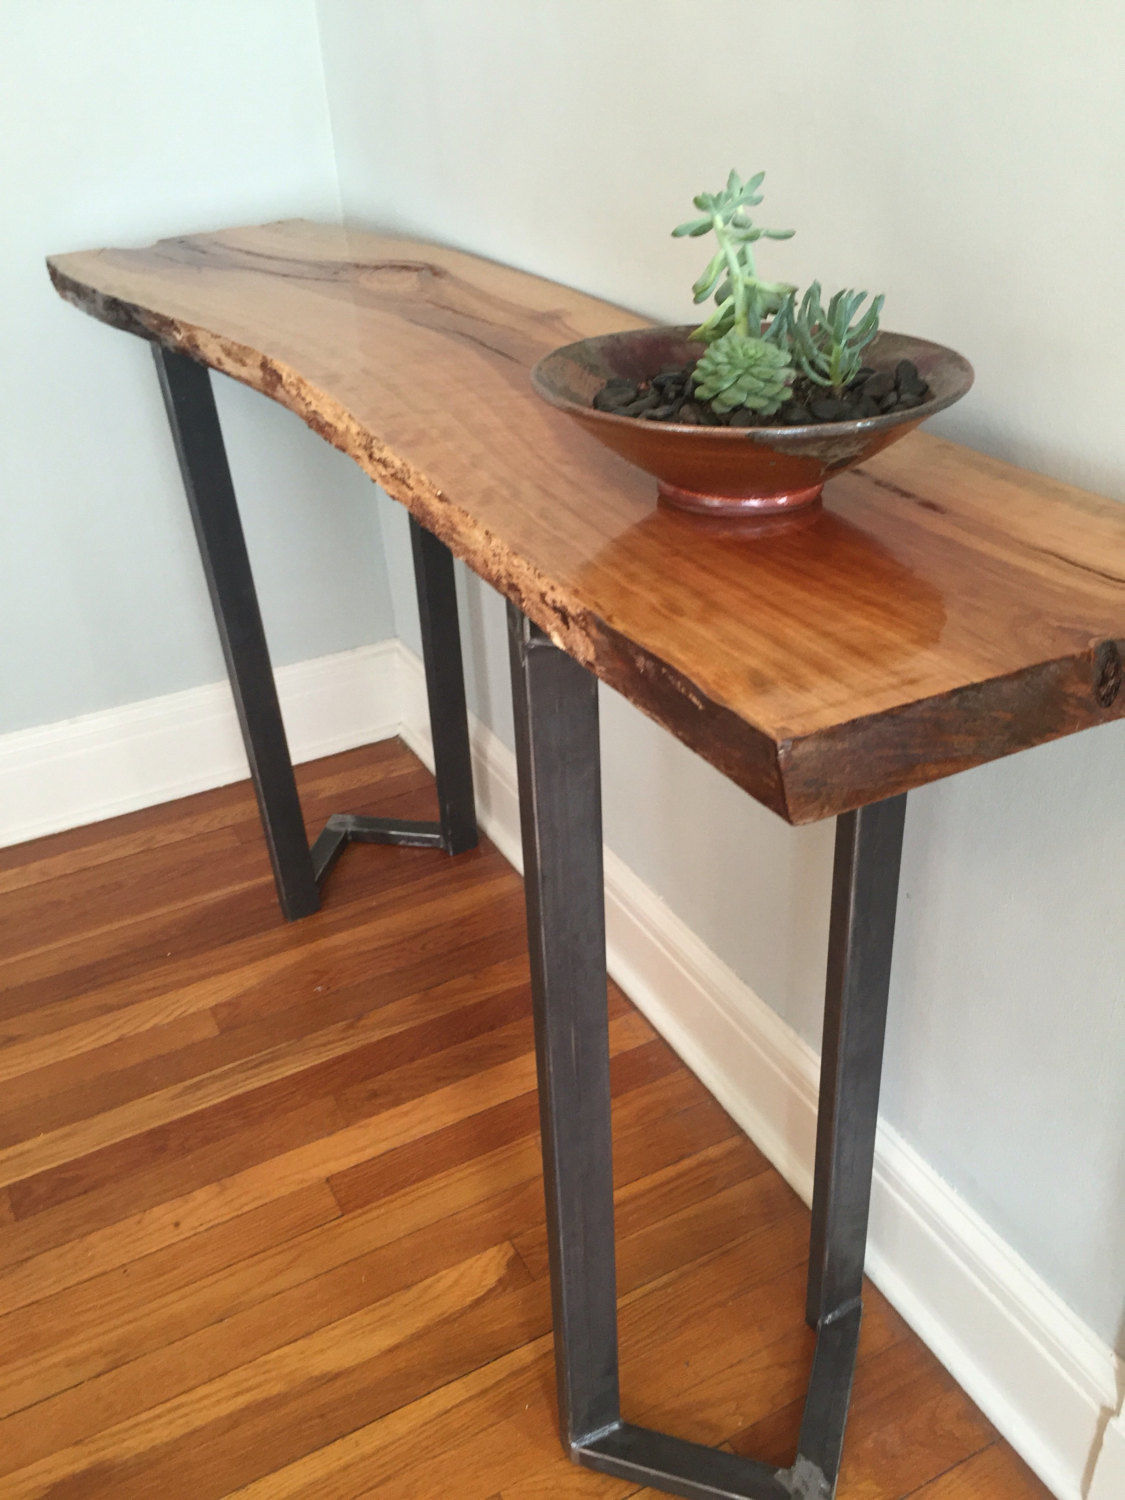 modern reclaimed wood sofa table image-Wonderful Reclaimed Wood sofa Table Architecture